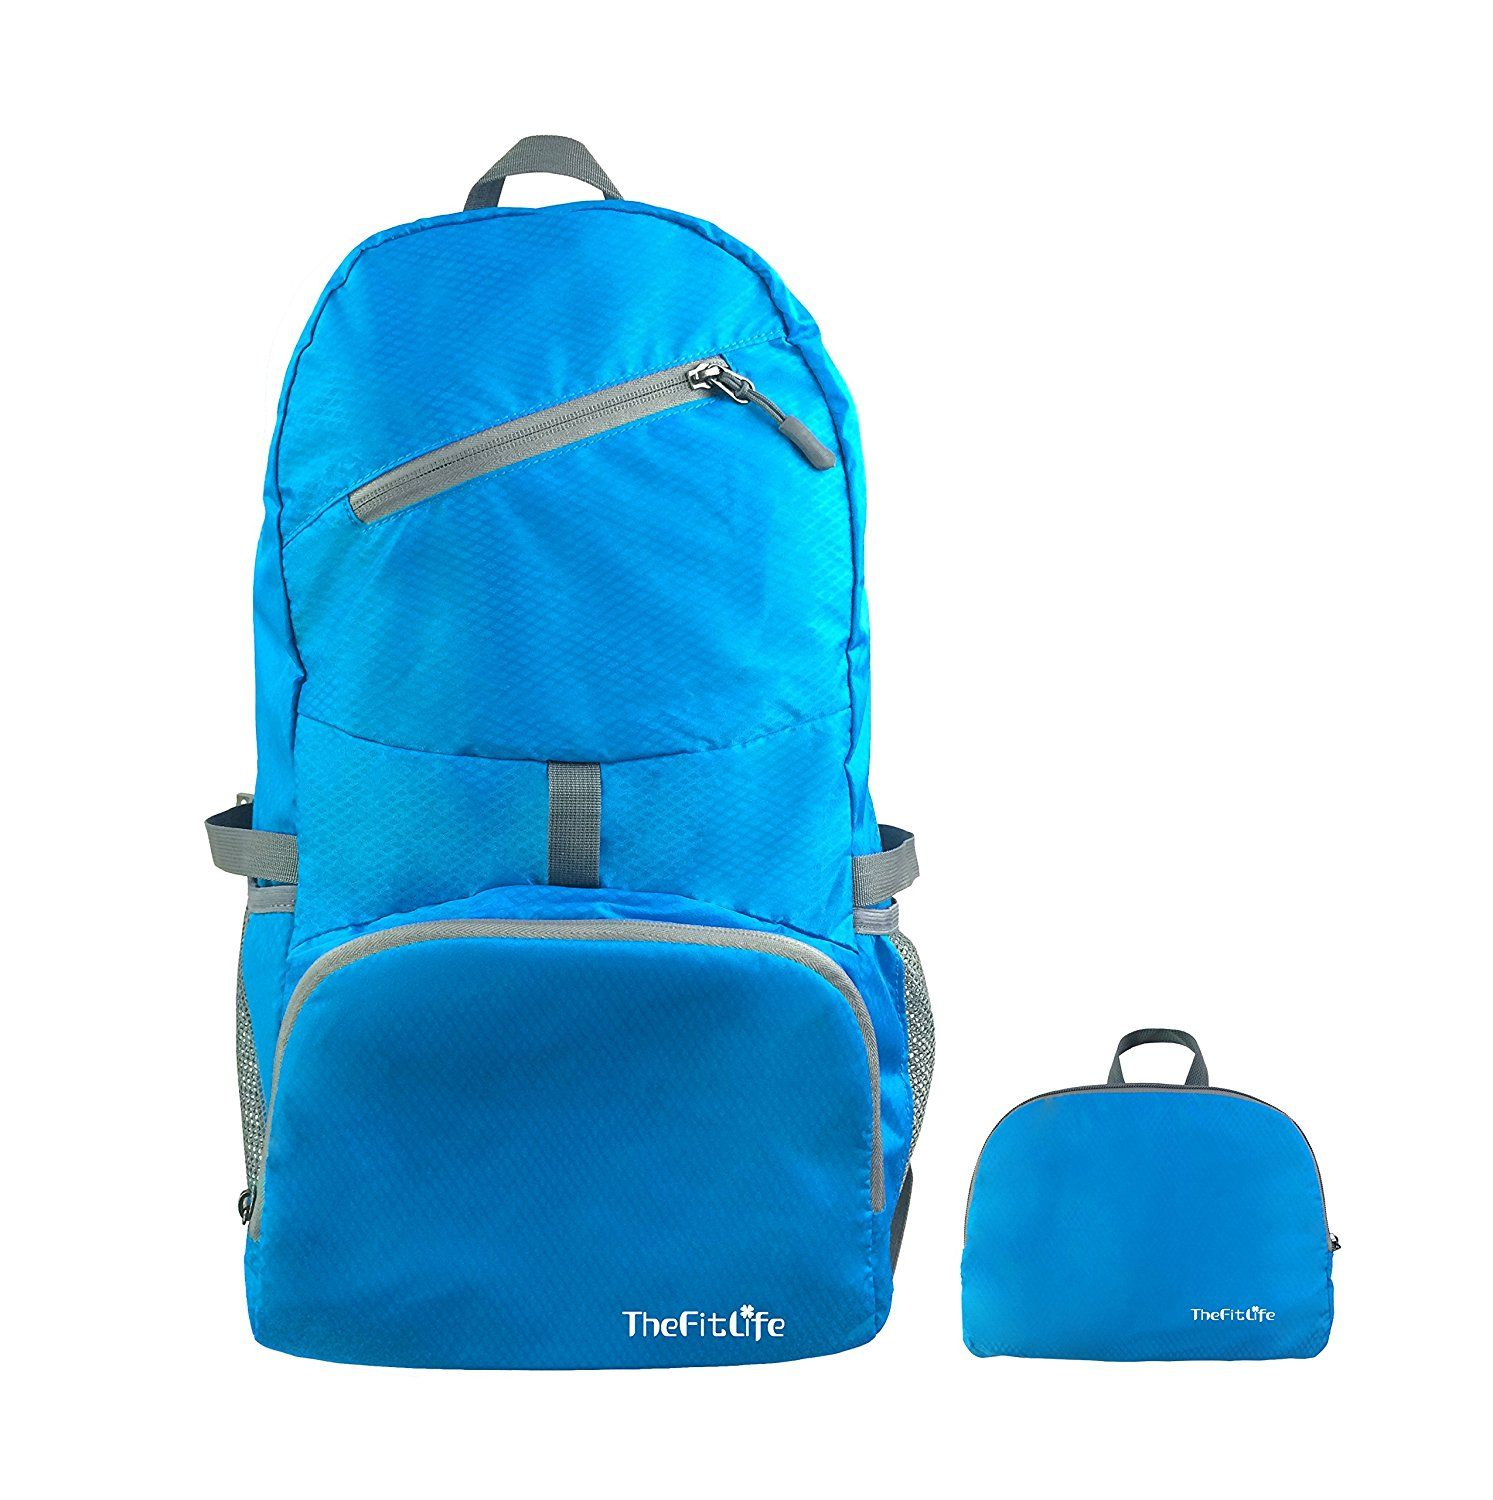 TheFitLife Travel Backpack Packable Bag Handy Lightweight Large Waterproof  Folding Portable And Durable For Hiking Camping Trekking Cycling Climbing  ... bfce921ca61e5